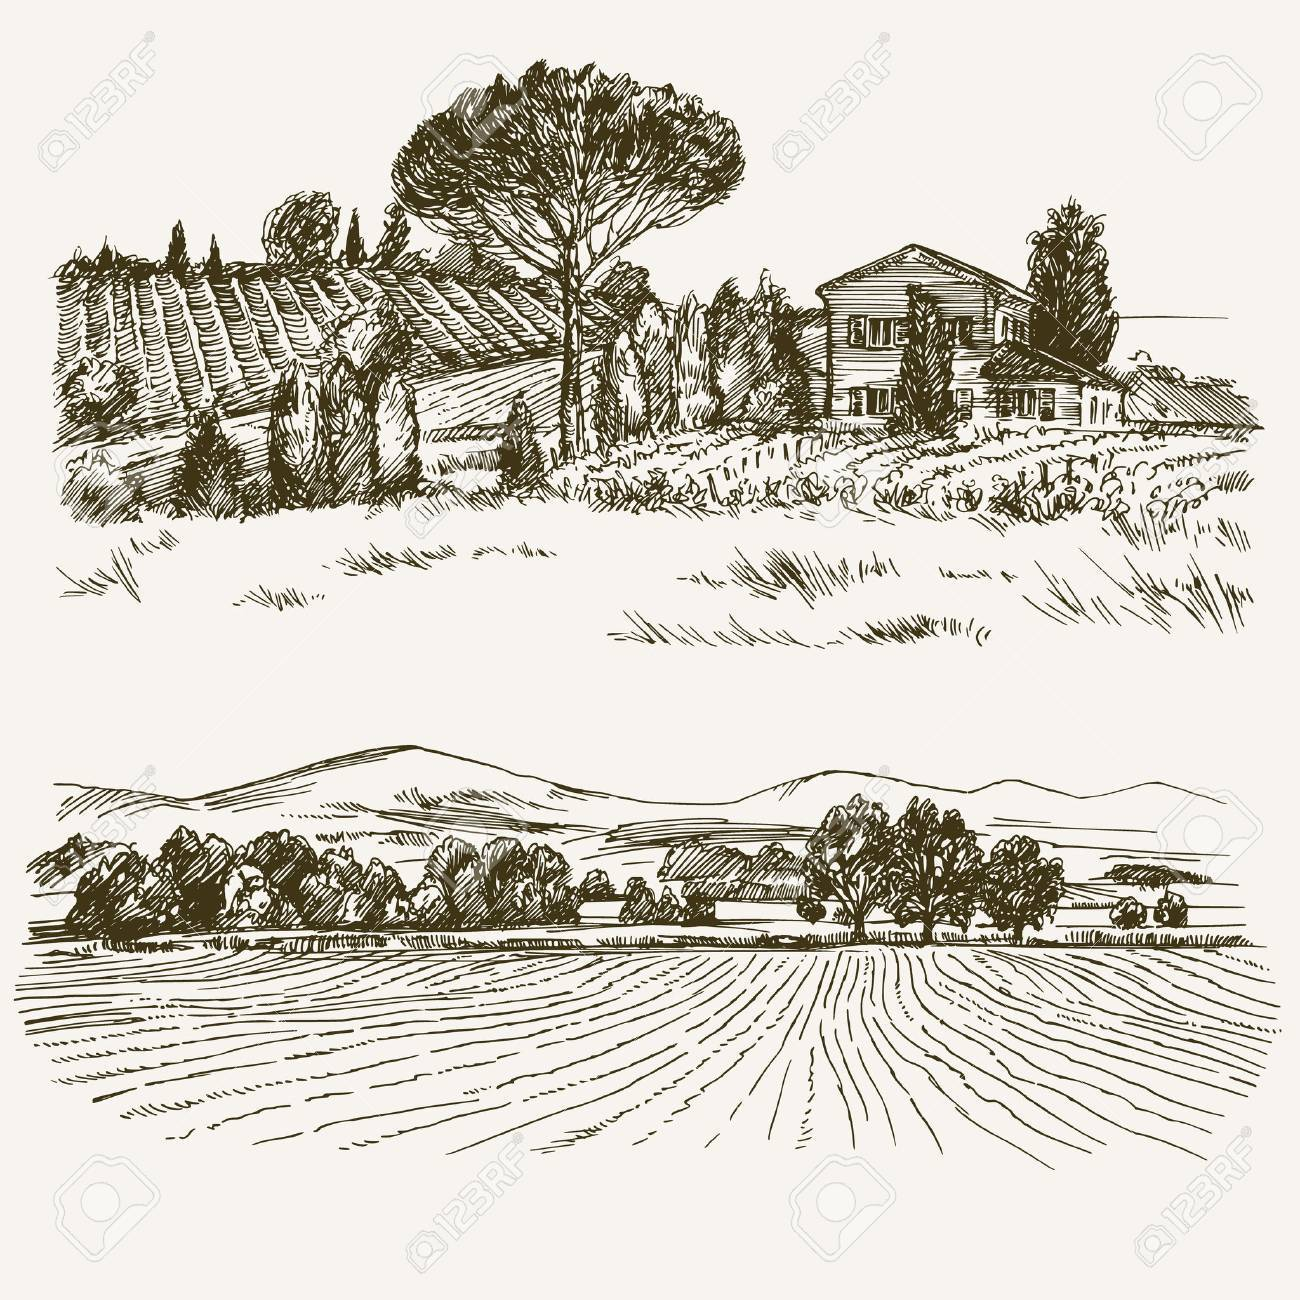 Rural landscape with country house and vineyard. - 62268727